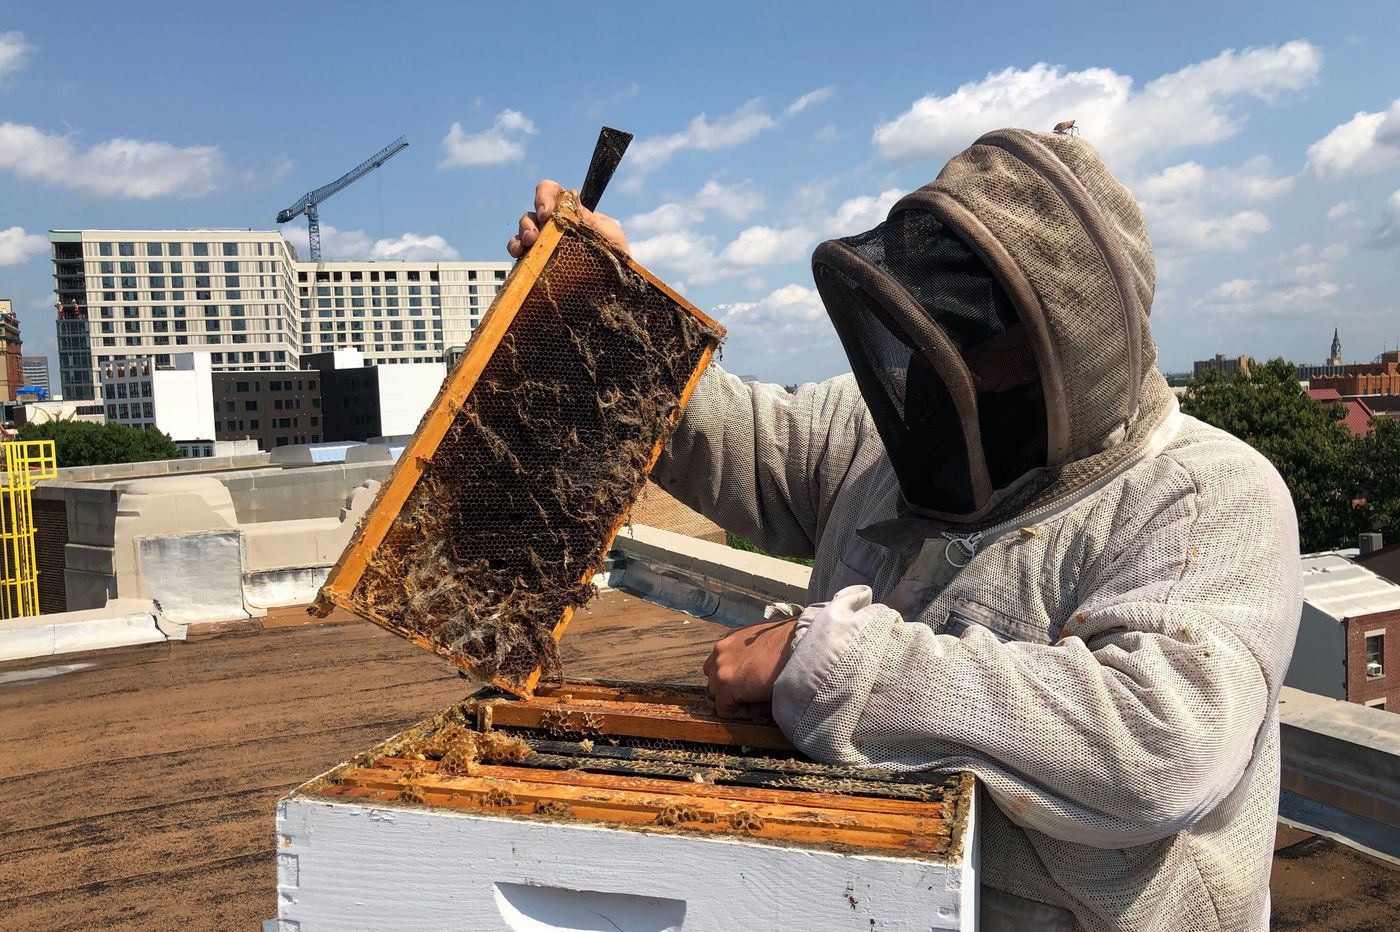 A beekeeper and restaurant rally to save a North Broad synagogue's rooftop apiary